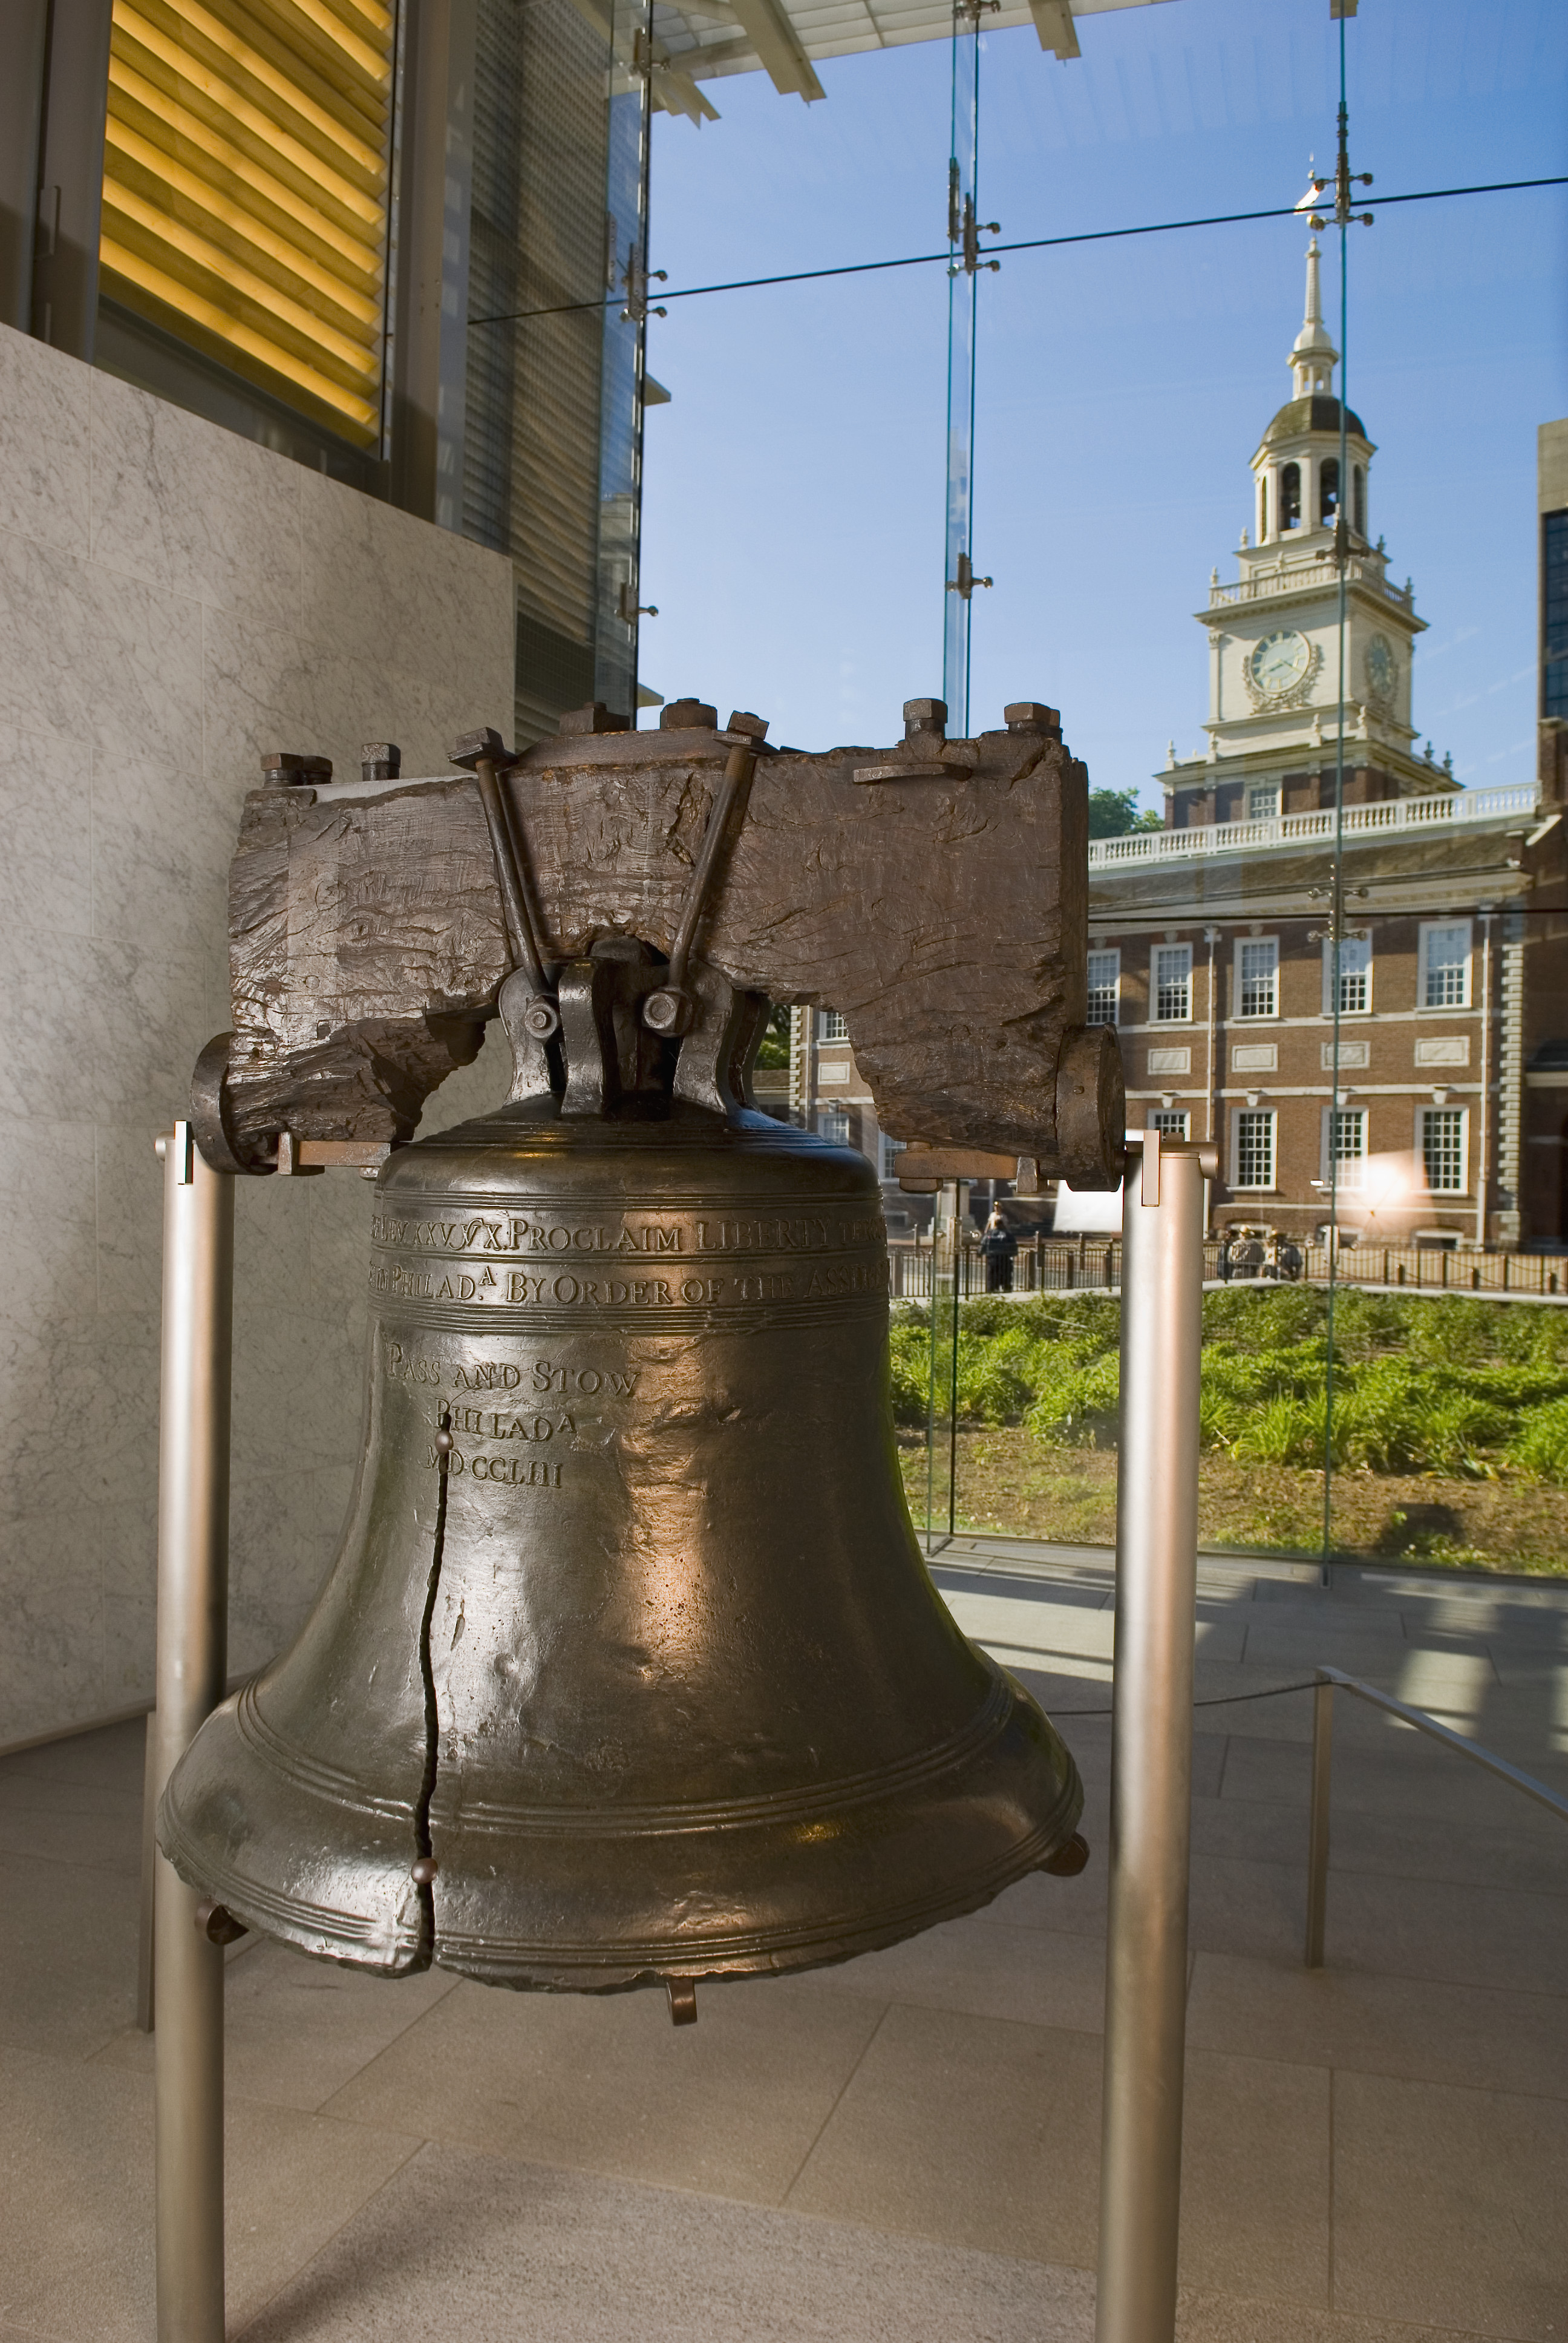 liberty bell The aspiration of this declaration is the yearning of every human heart, and it is now being expressed in a sacred space by the spoons these young women are carrying.